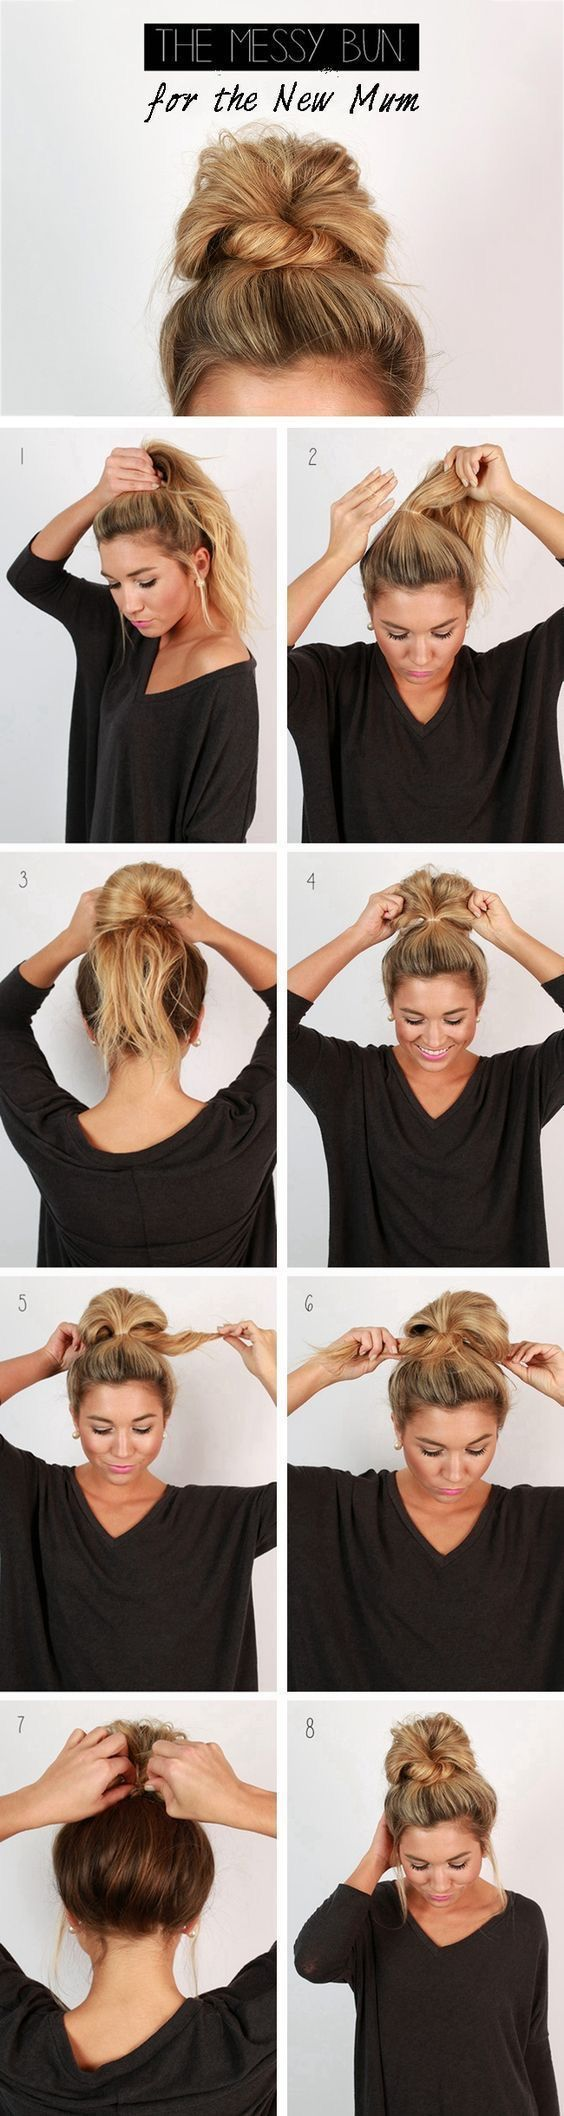 Pin by aubrey kester on my style in pinterest hair styles